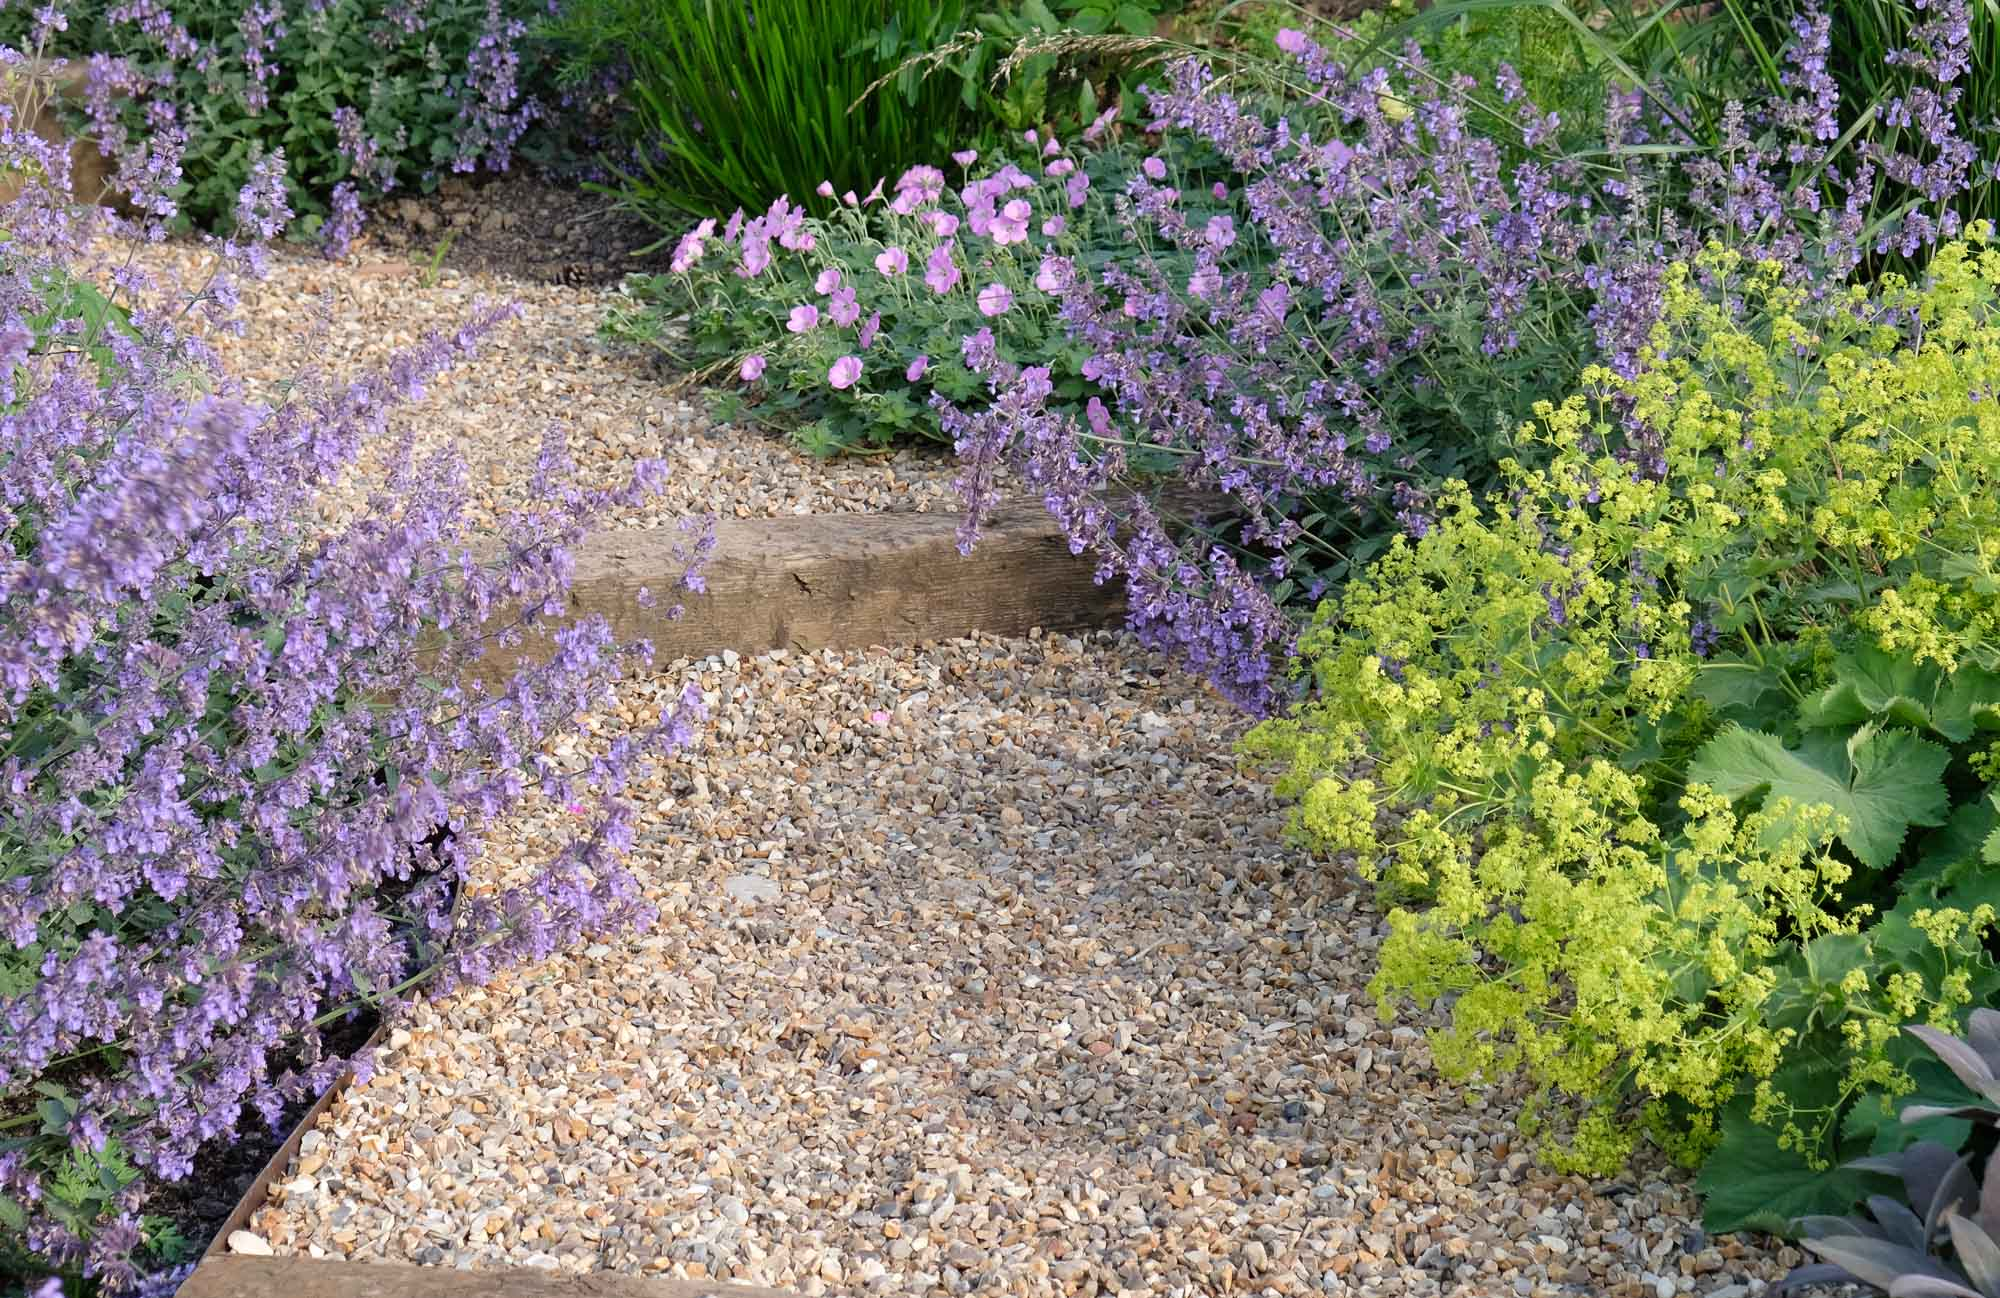 Catmint and alchemilla make a soft, cottagey accompaniment to this gravel path